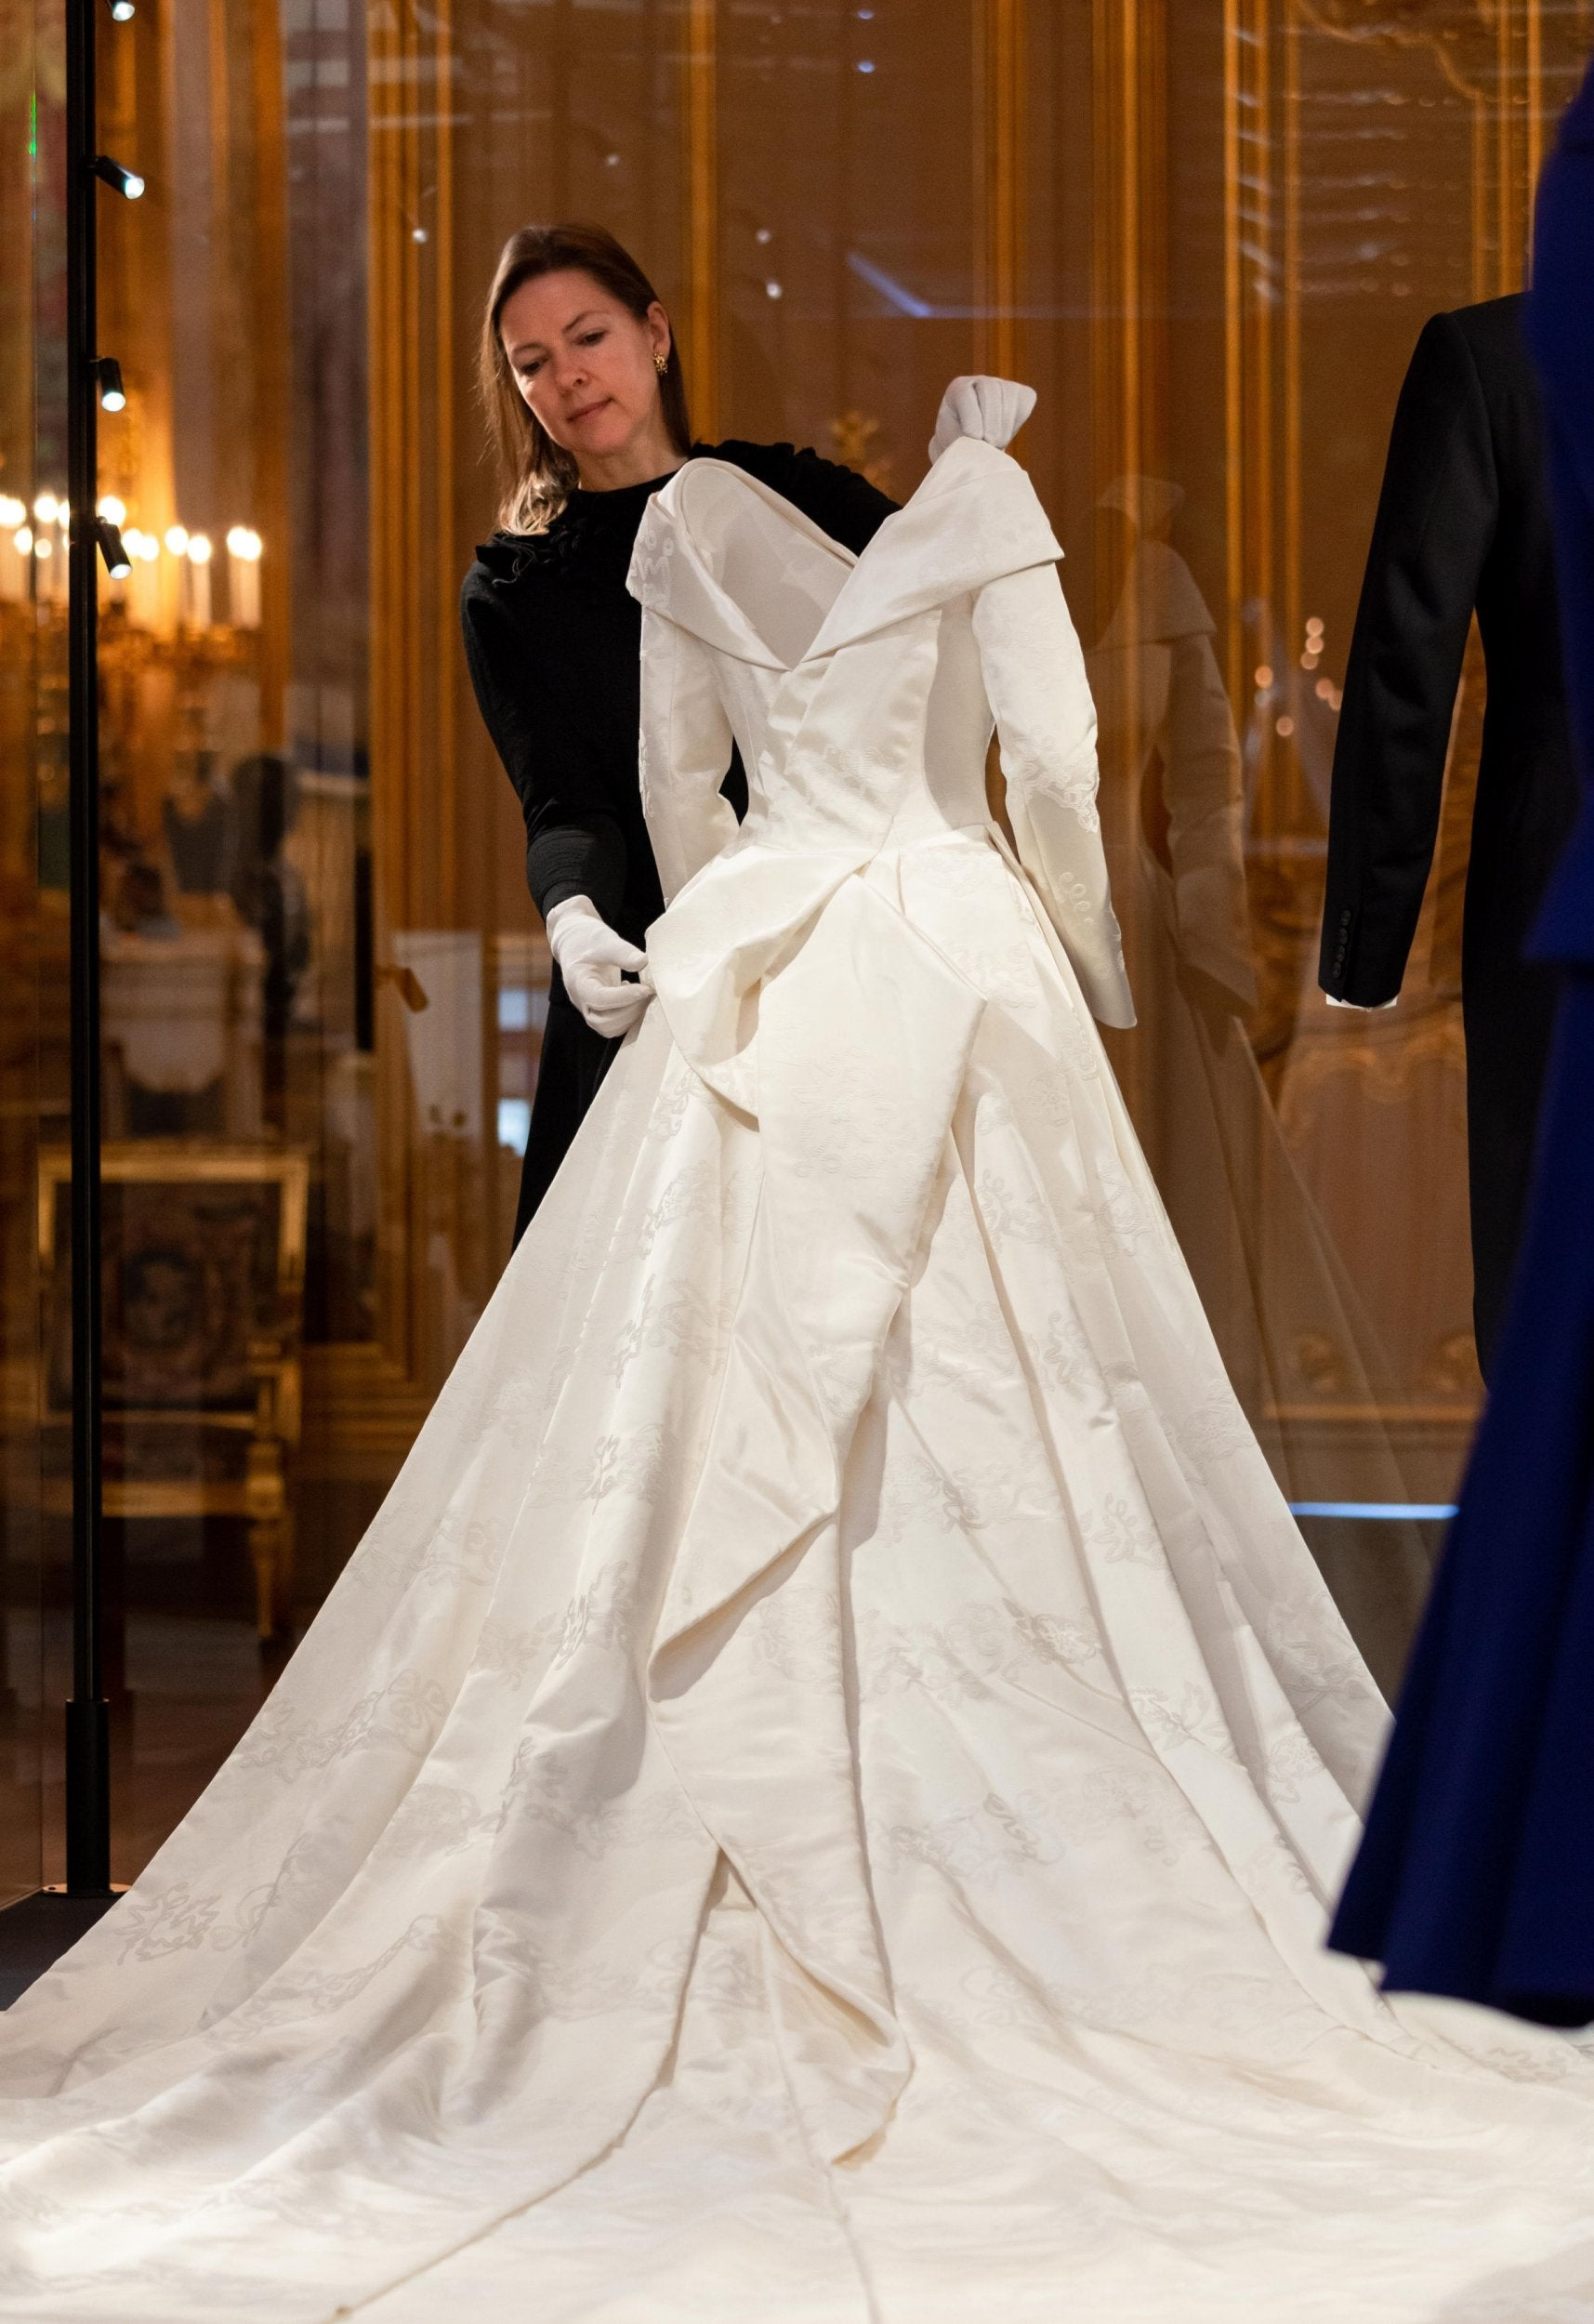 Princess Eugenie Reveals Why She Wanted Her Wedding Dress To Show